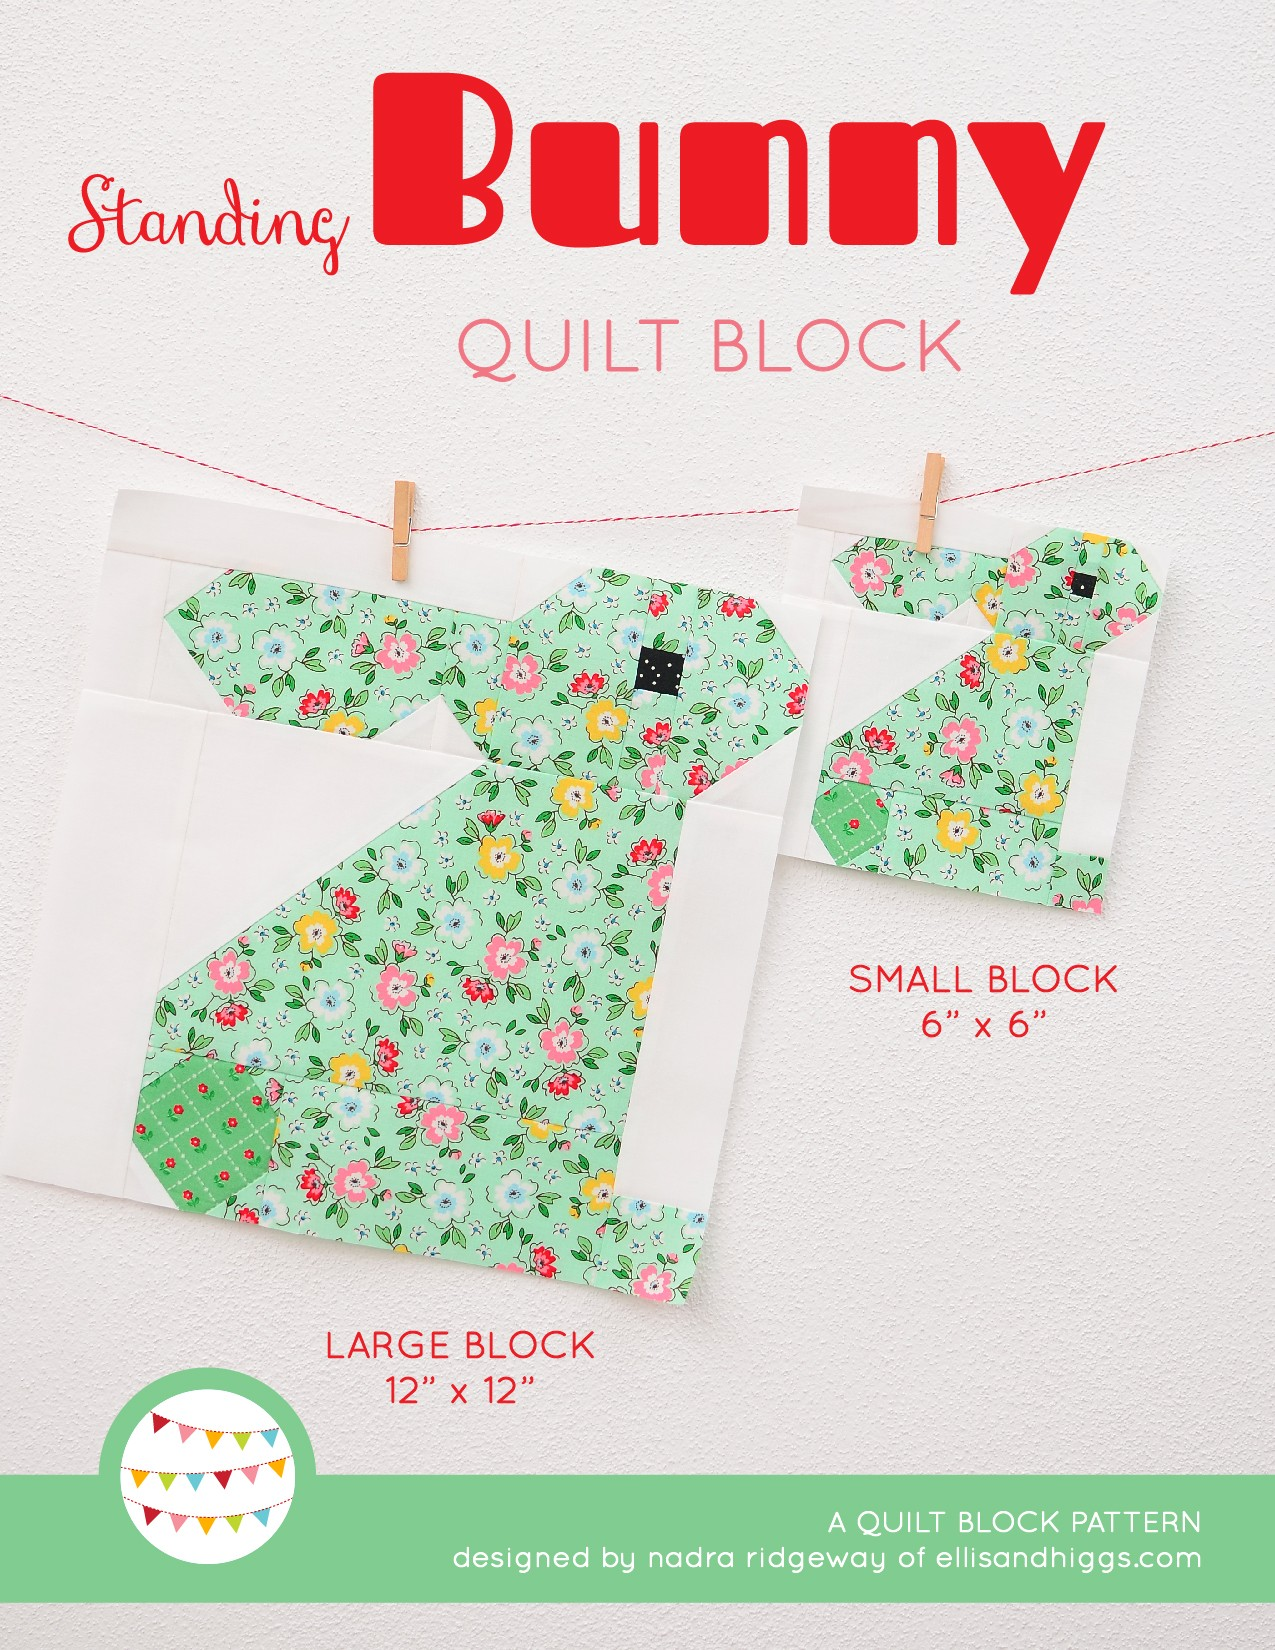 Standing Bunny quilt block in two sizes hanging on a wall